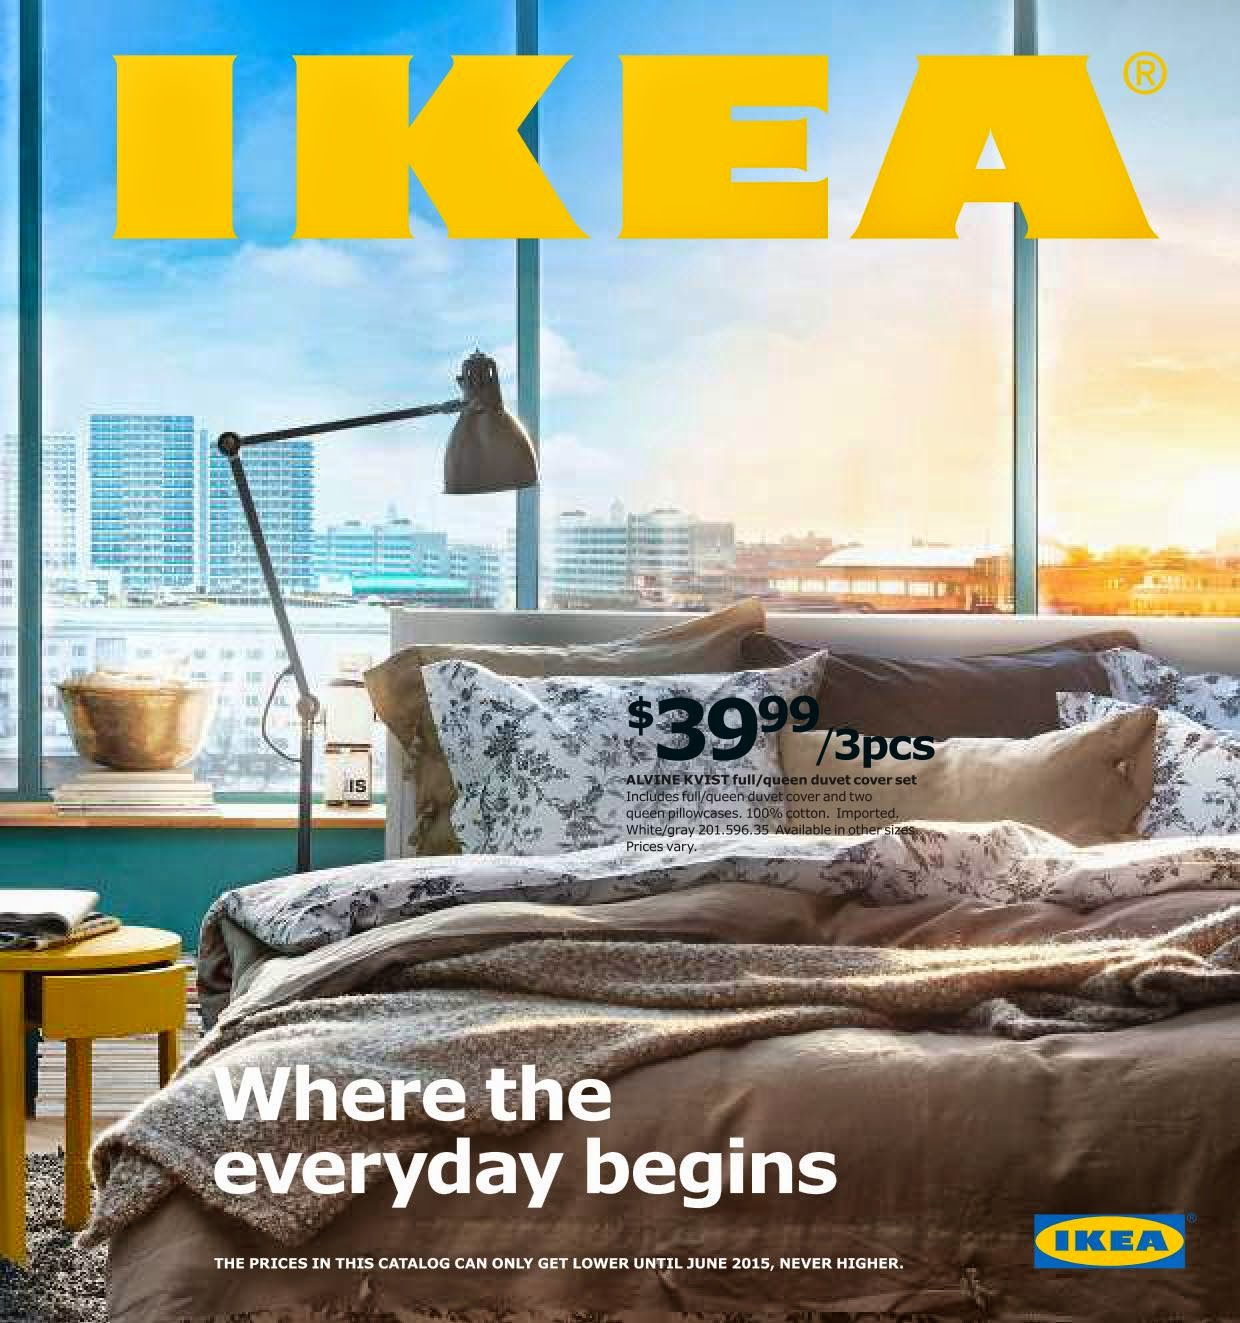 http://onlinecatalogue.ikea.com/IE/en/IKEA_Catalogue/